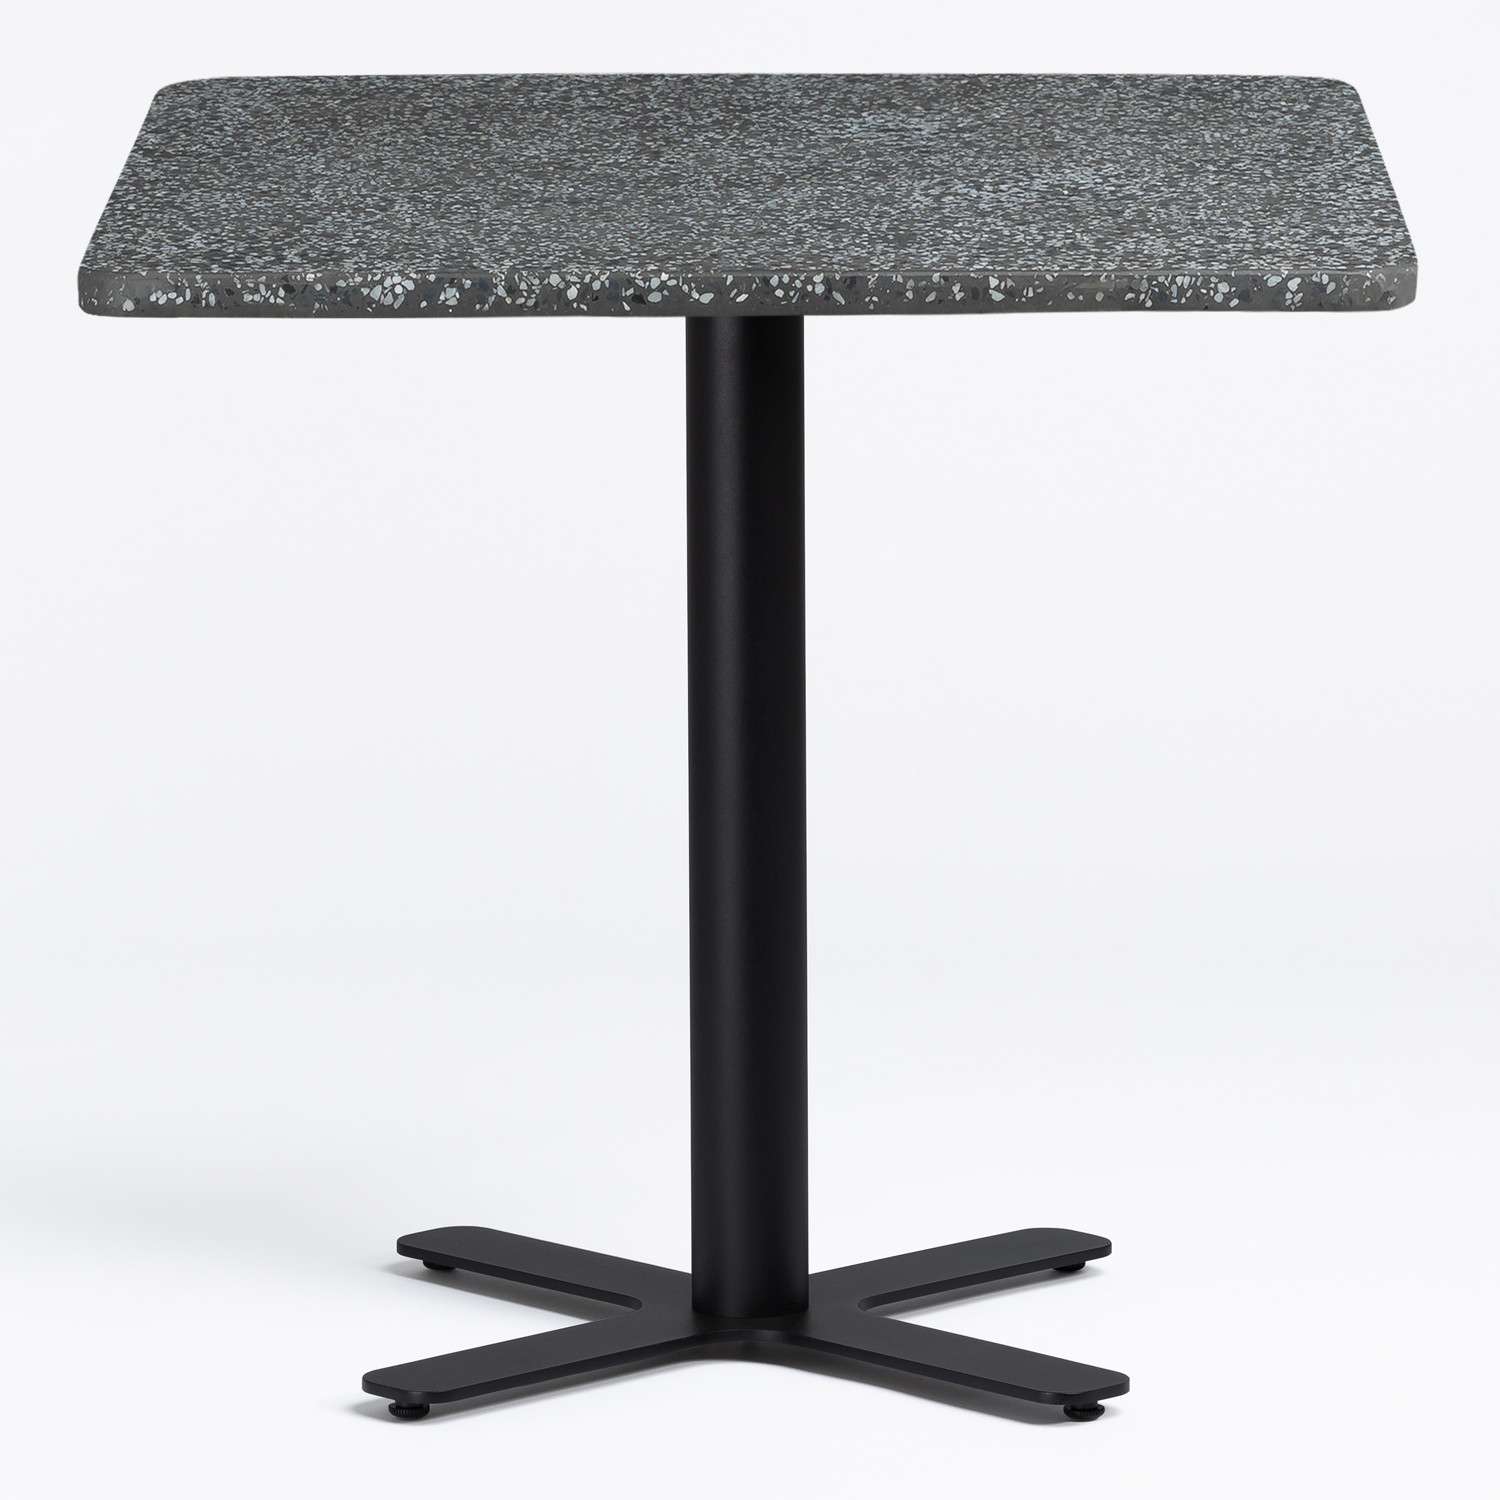 Table in Cement finished Terrazzo Bhôs, gallery image 1